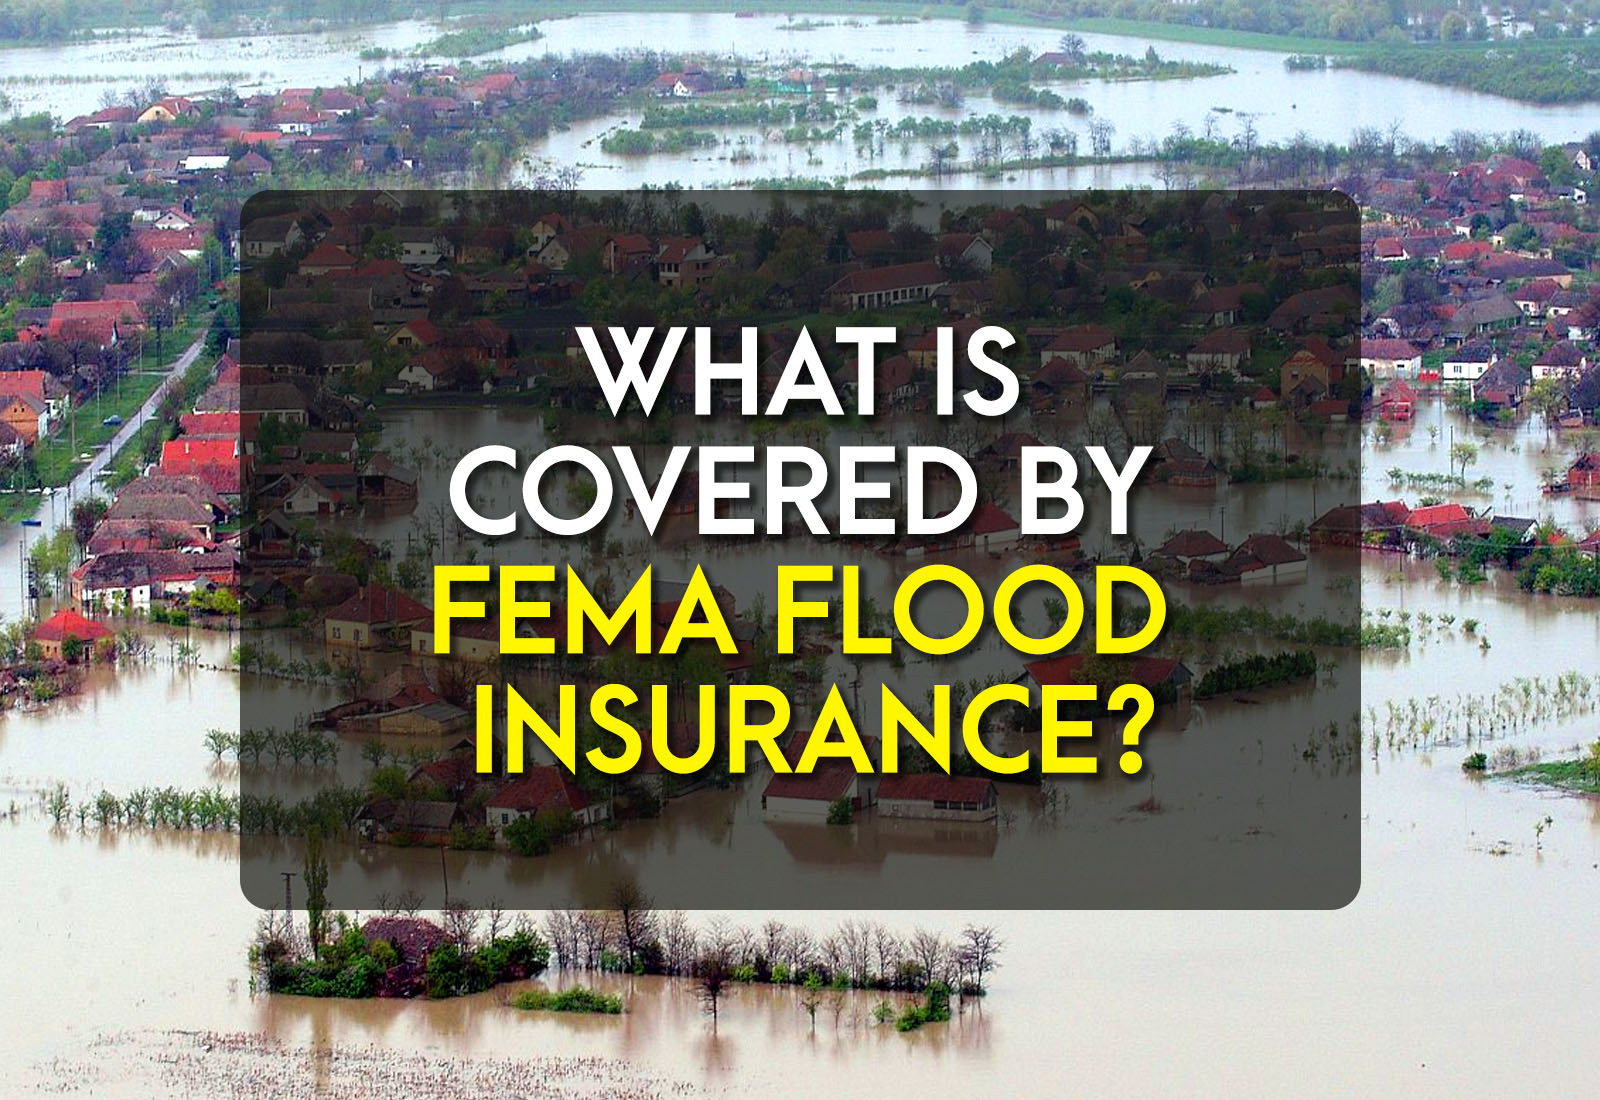 What is Covered by FEMA Flood Insurance?